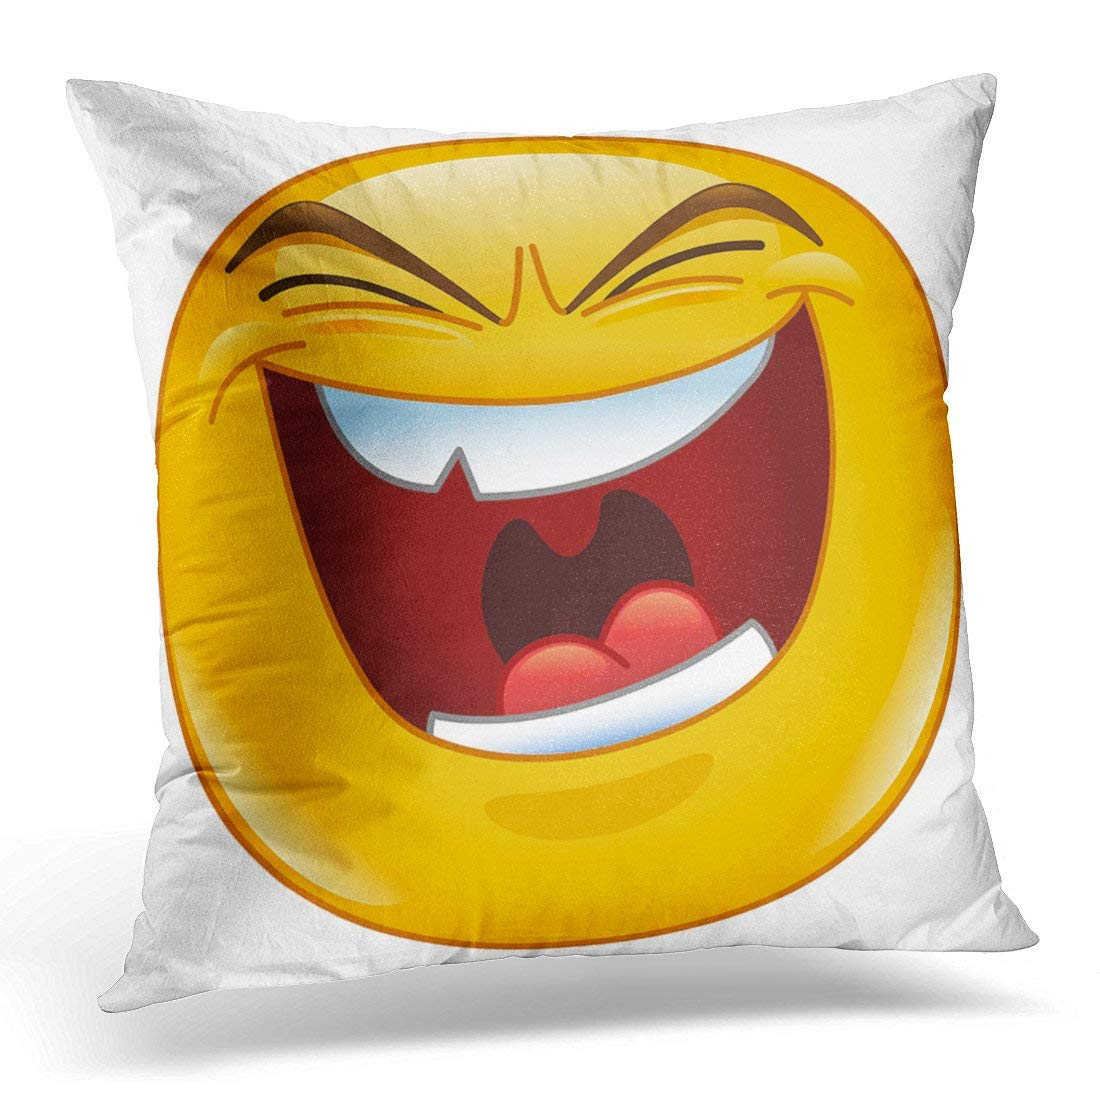 Amazon com: Jbralid Yellow Emoji Emoticon with Evil Laugh